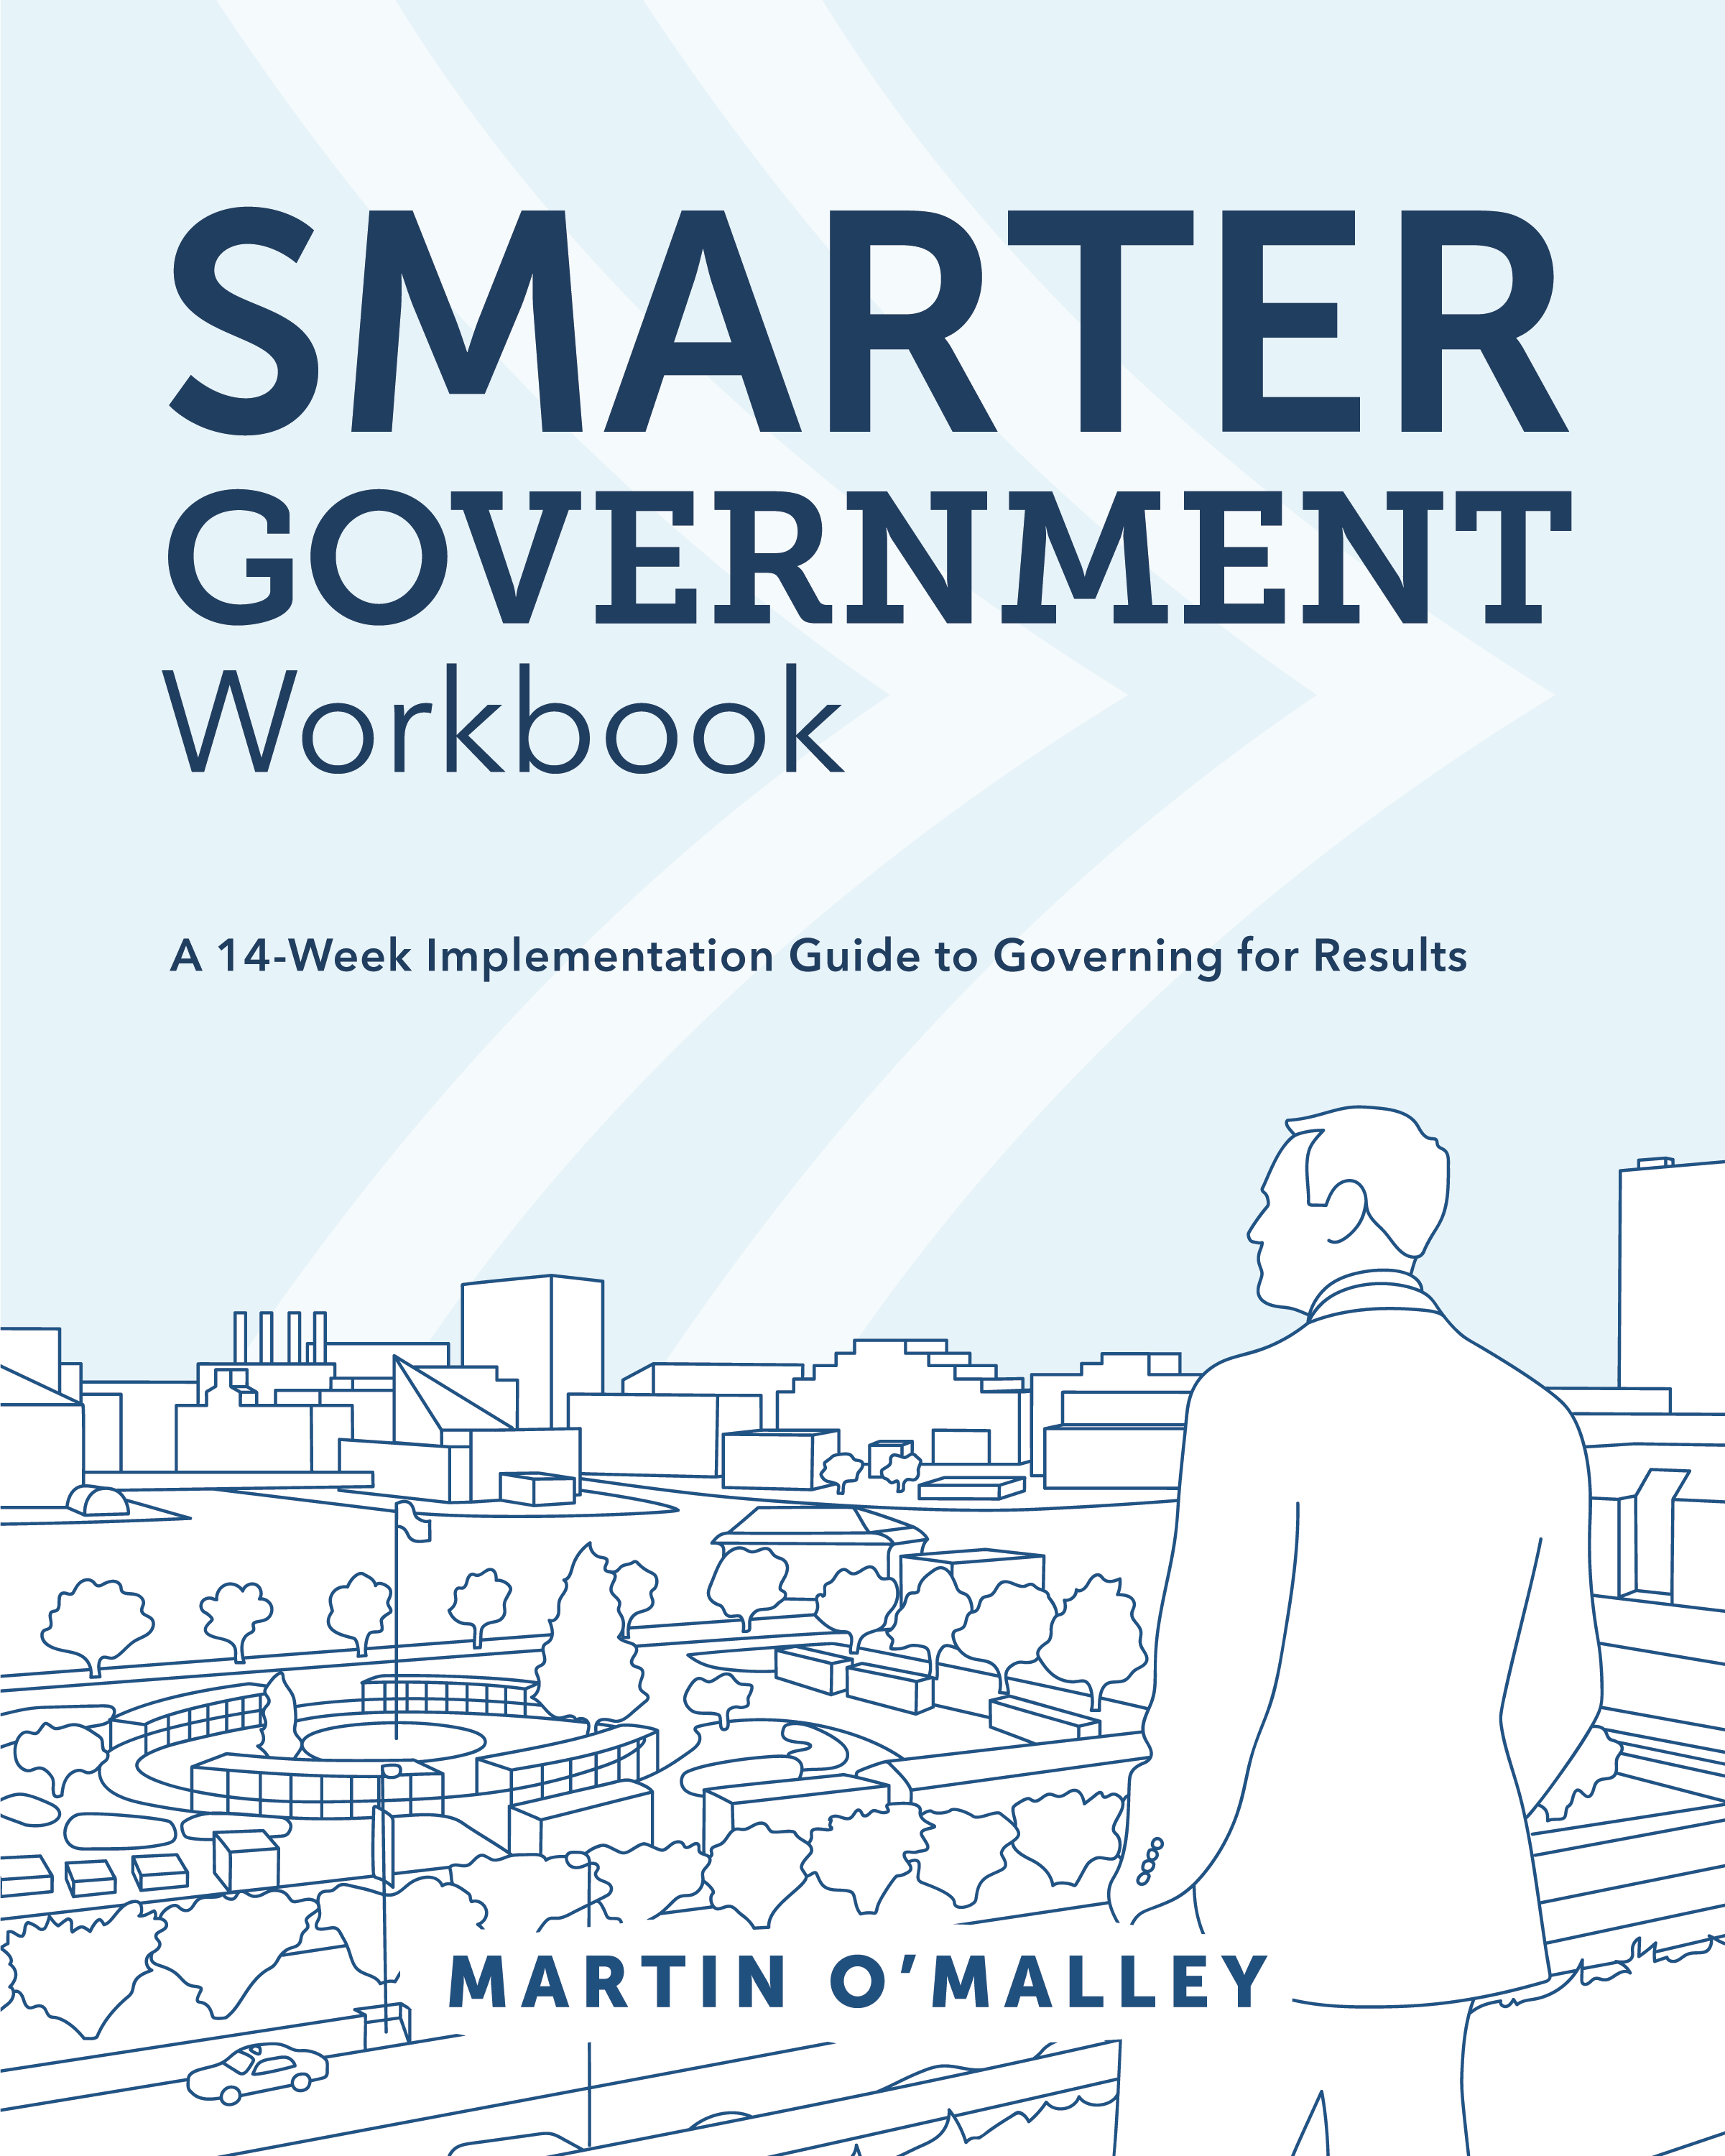 Smarter Government workbook cover